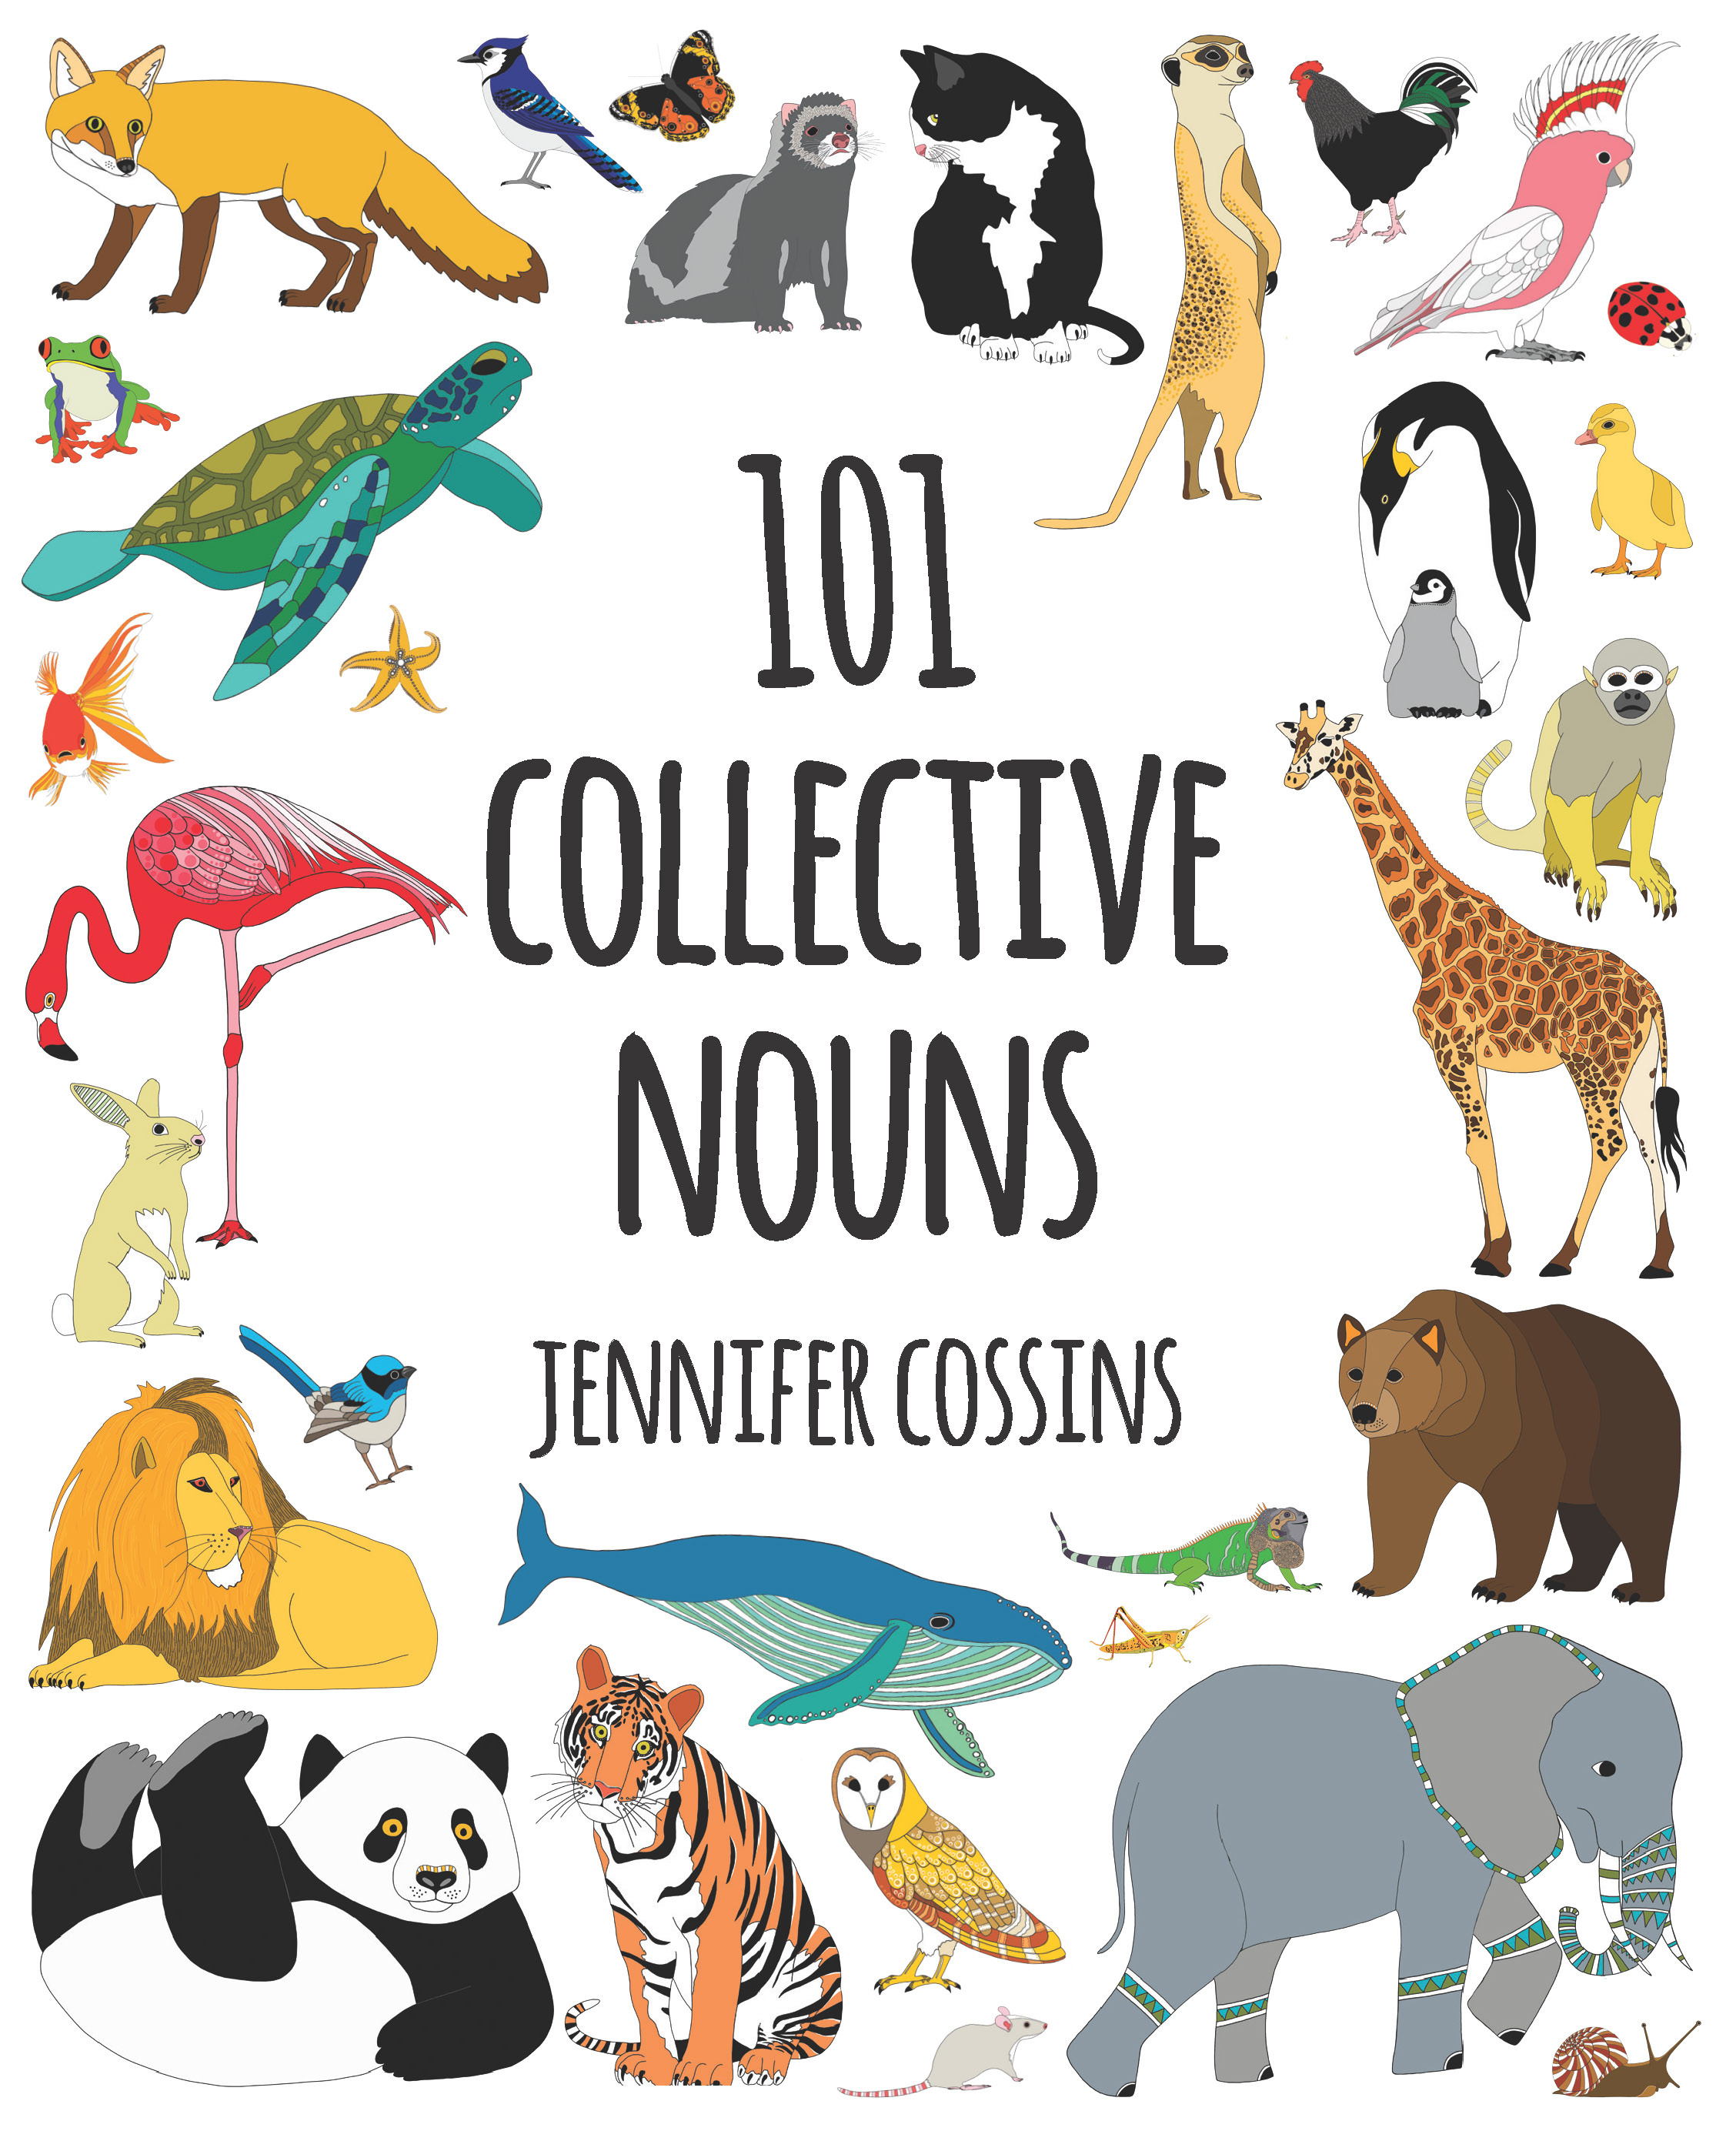 101 Collective Nouns by Jennifer Cossins, ISBN: 9780734417978